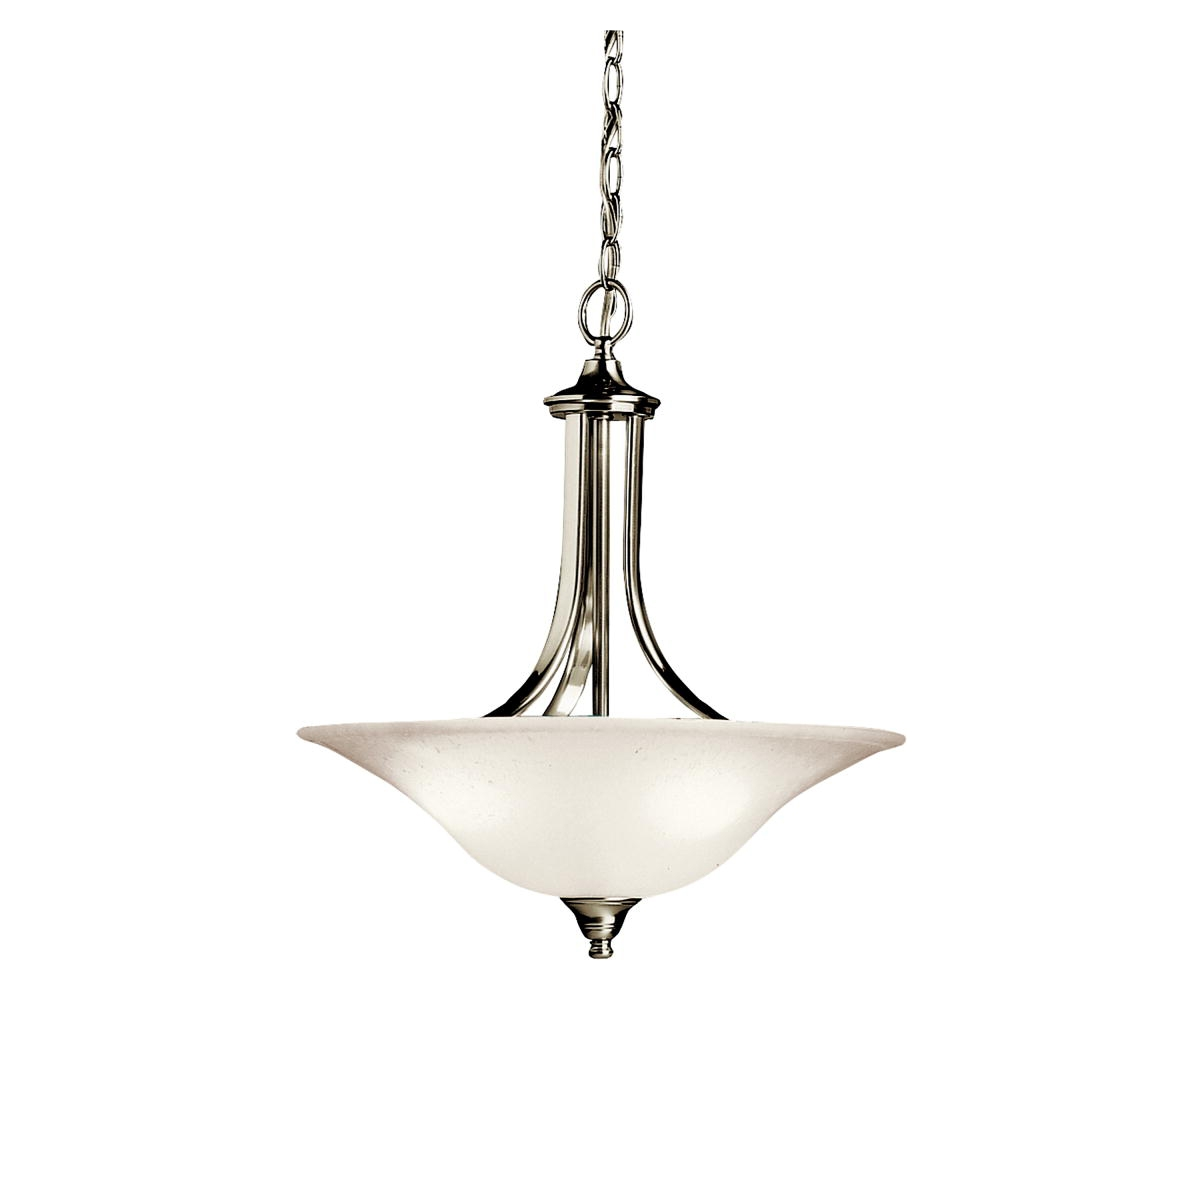 3 Light Inverted Pendant In Brushed Nickel Dover Collection Intended For Inverted Pendant Chandeliers (Image 2 of 25)